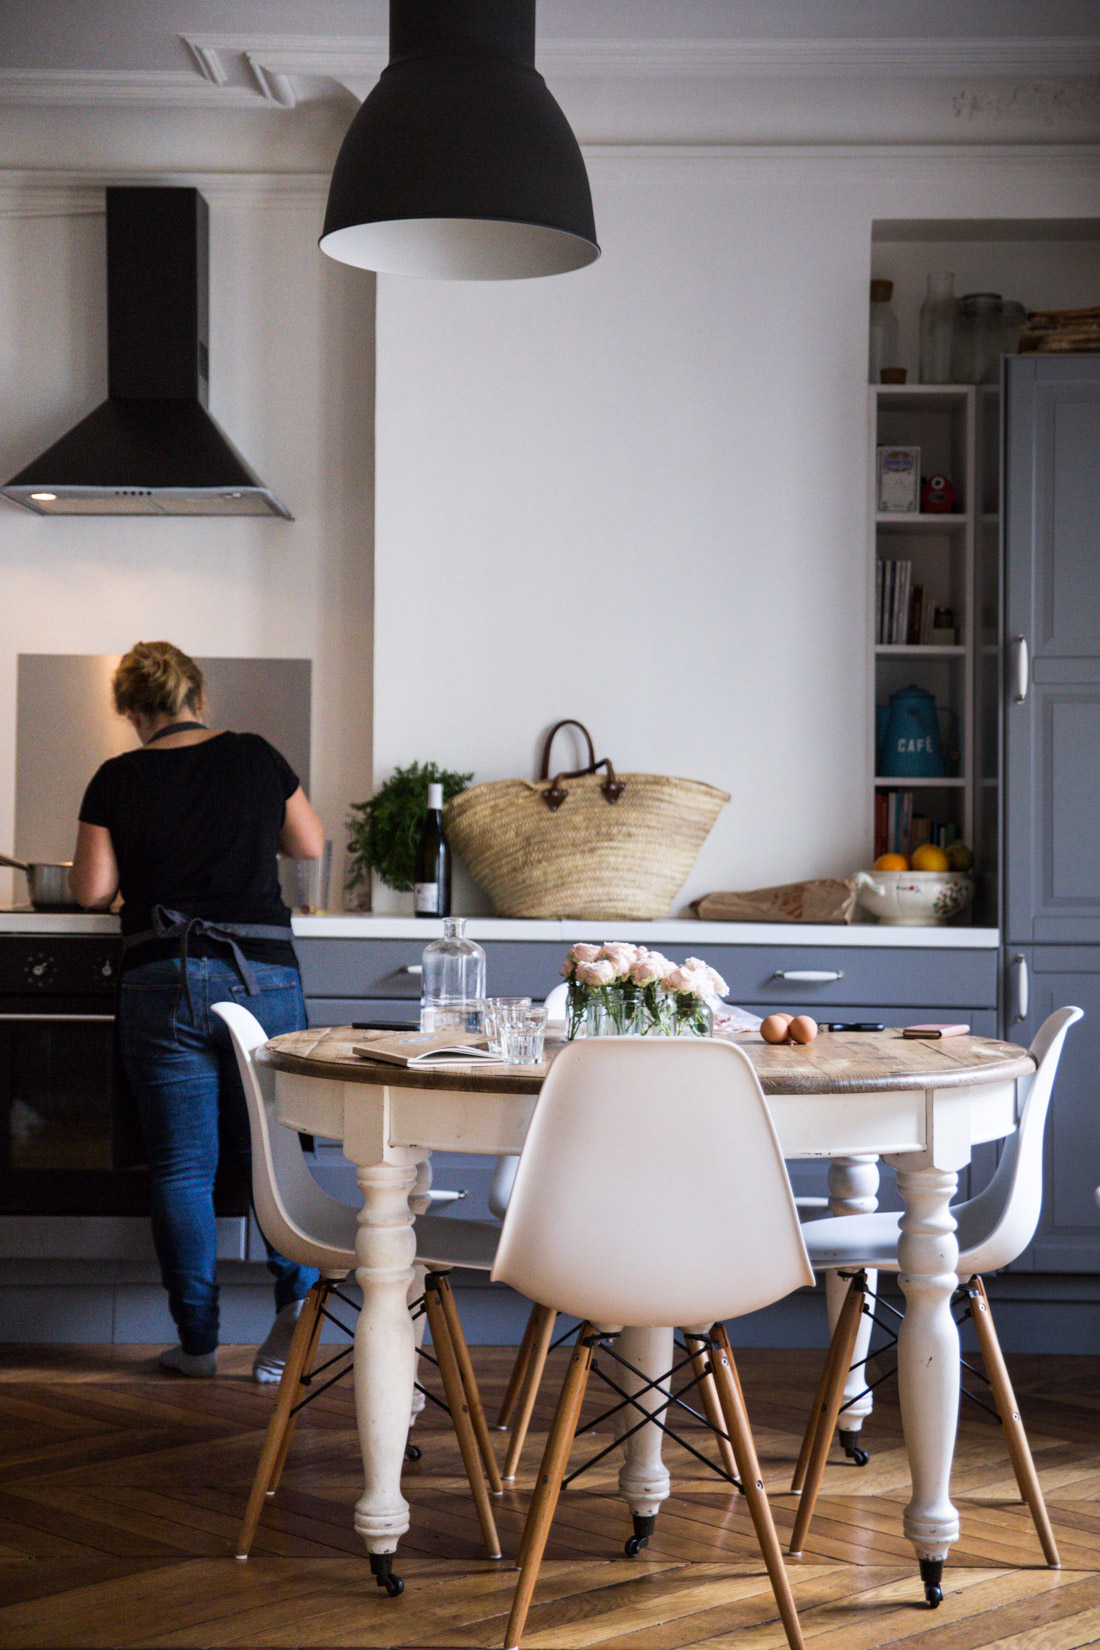 the-parisian-kitchen-benedicte-ophelies-kitchen-book-ophelie-lauret-31